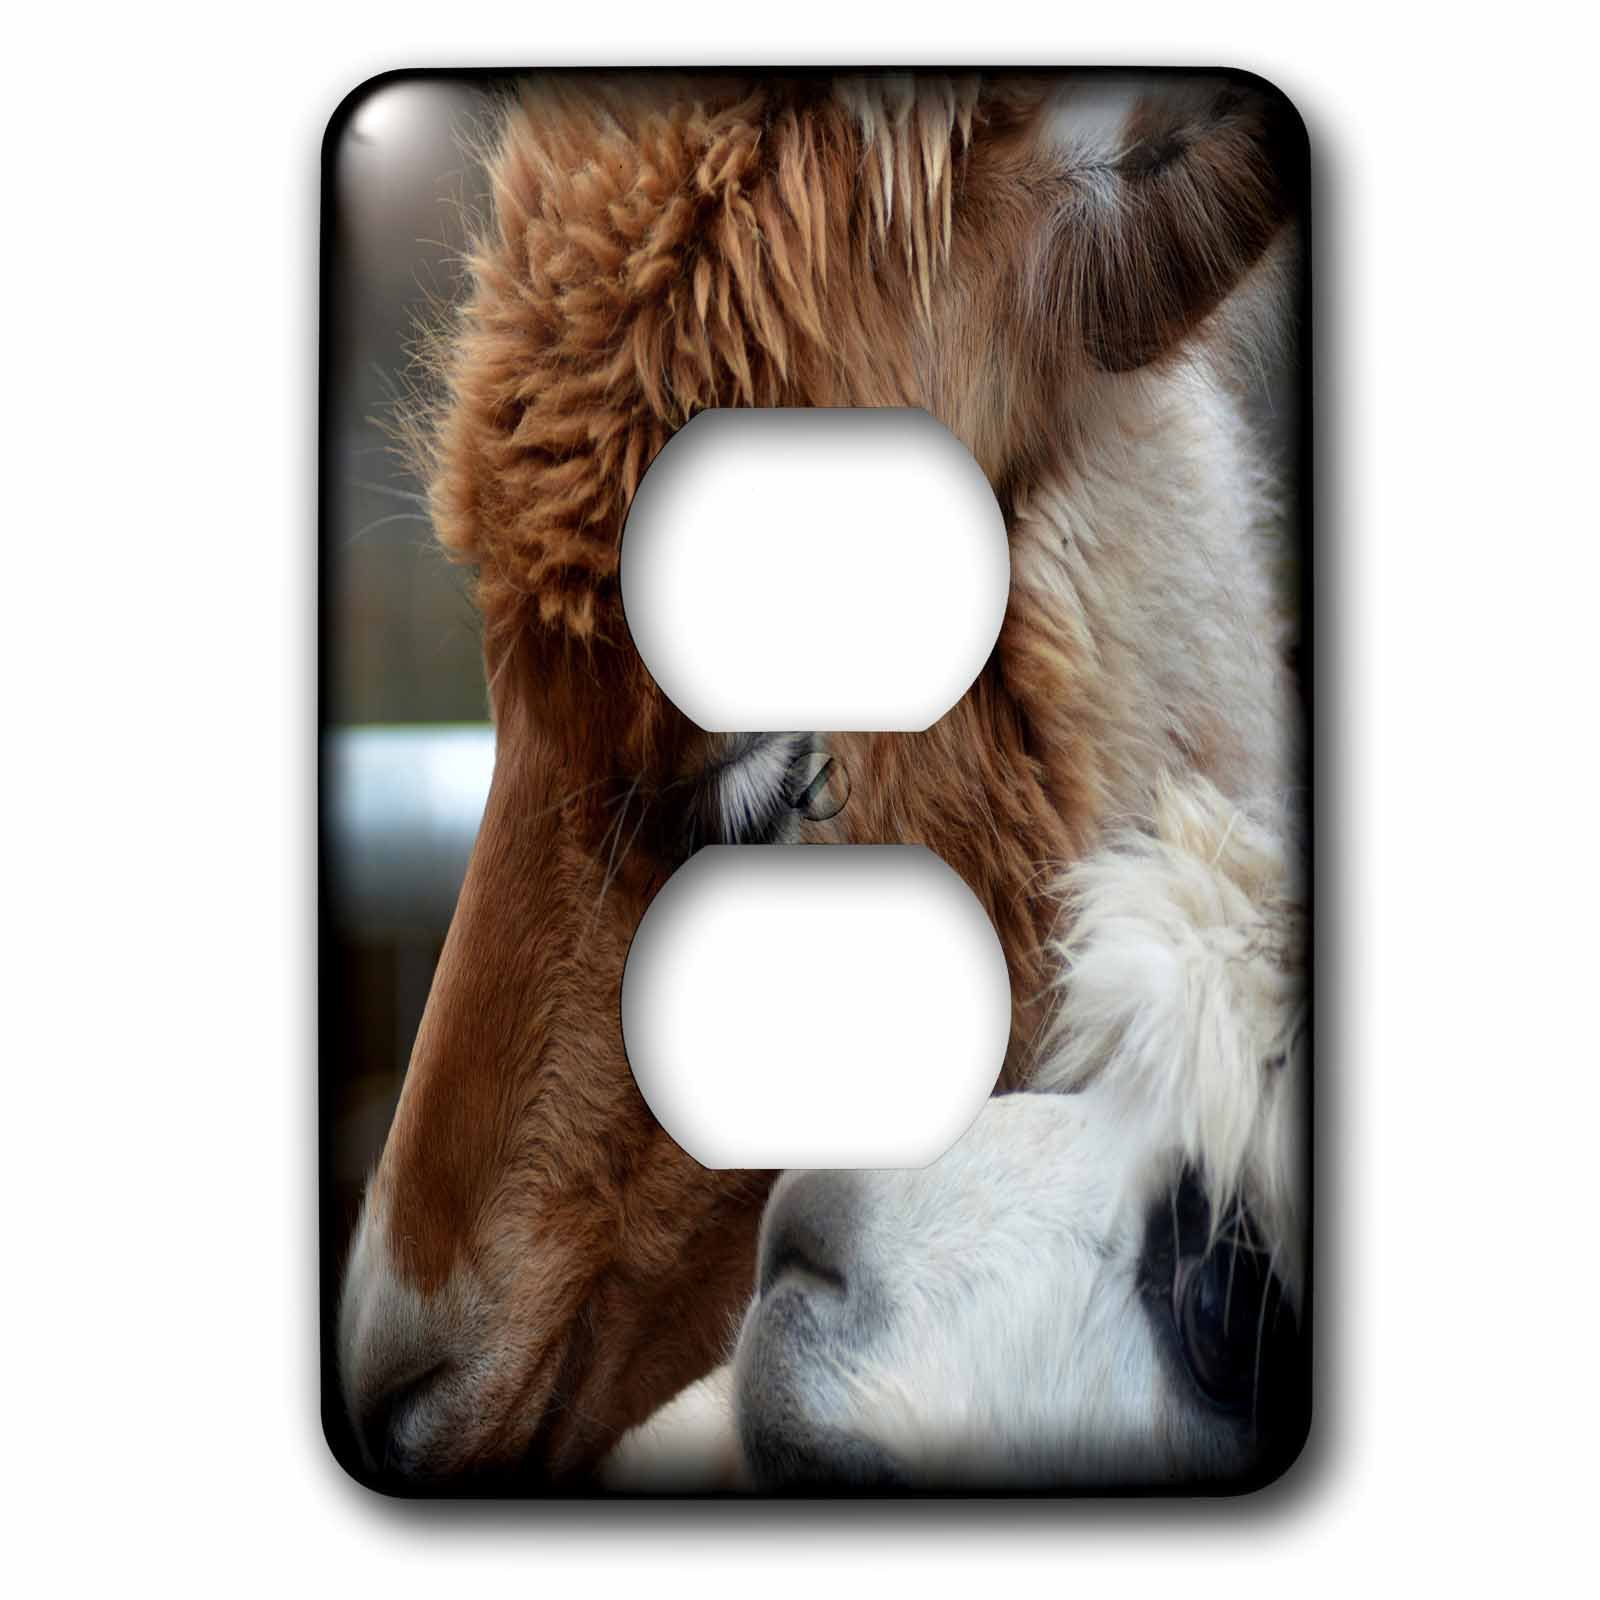 3dRose WhiteOaks Photography and Artwork - Lamas - Man Its Crowded up Here is a photo of two lamas crowding together - Light Switch Covers - 2 plug outlet cover (lsp_265333_6)